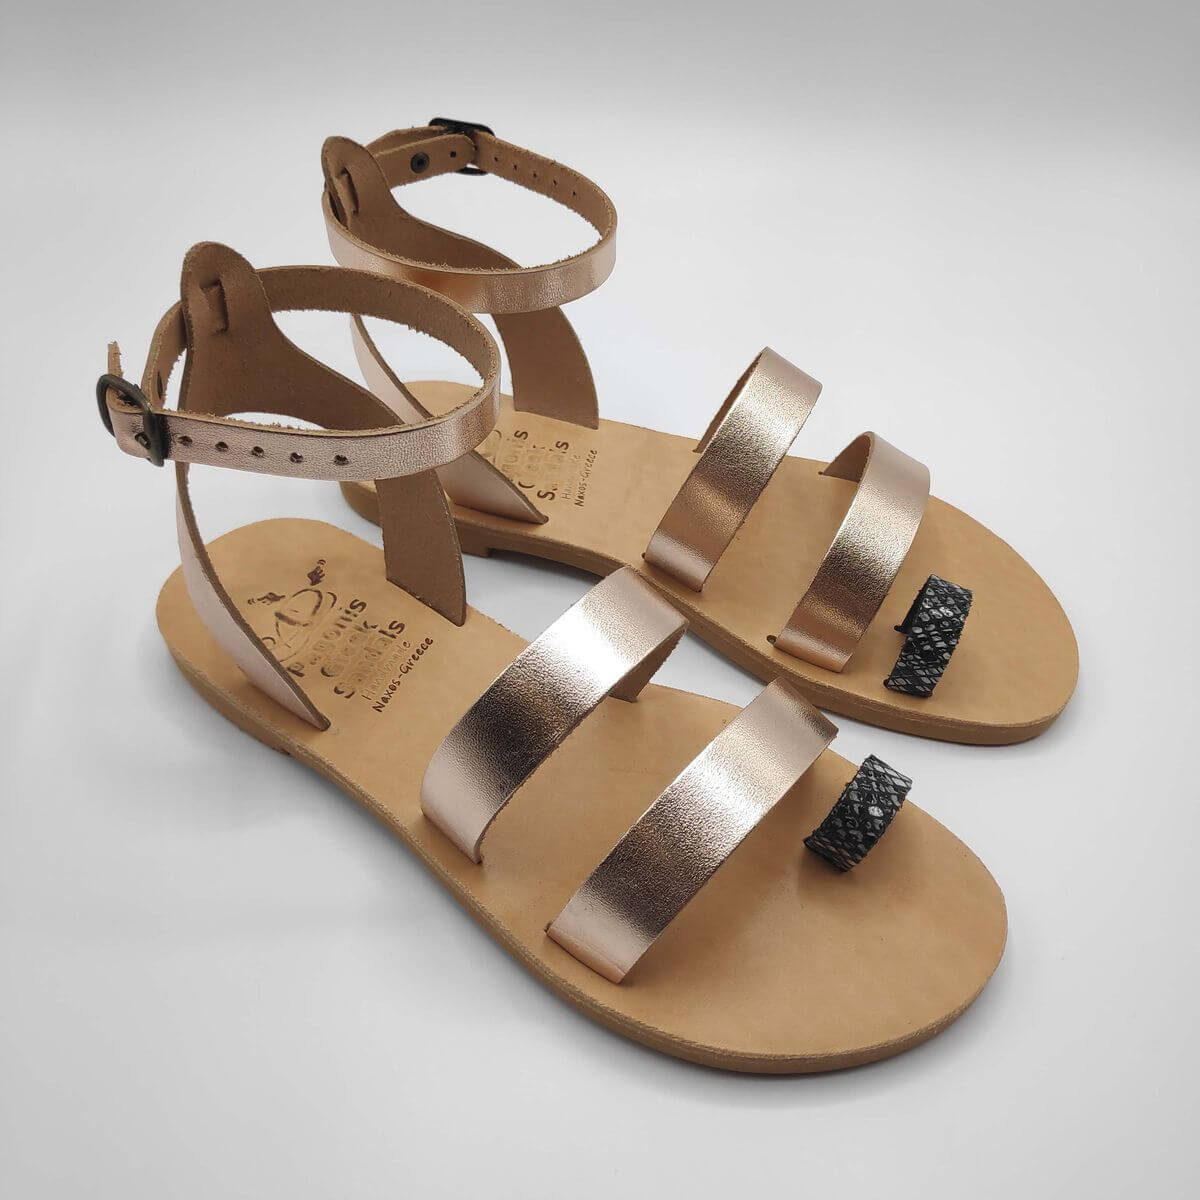 Rose gold leather dressy sandals with two straps, toe ring and high ankle strap, side view